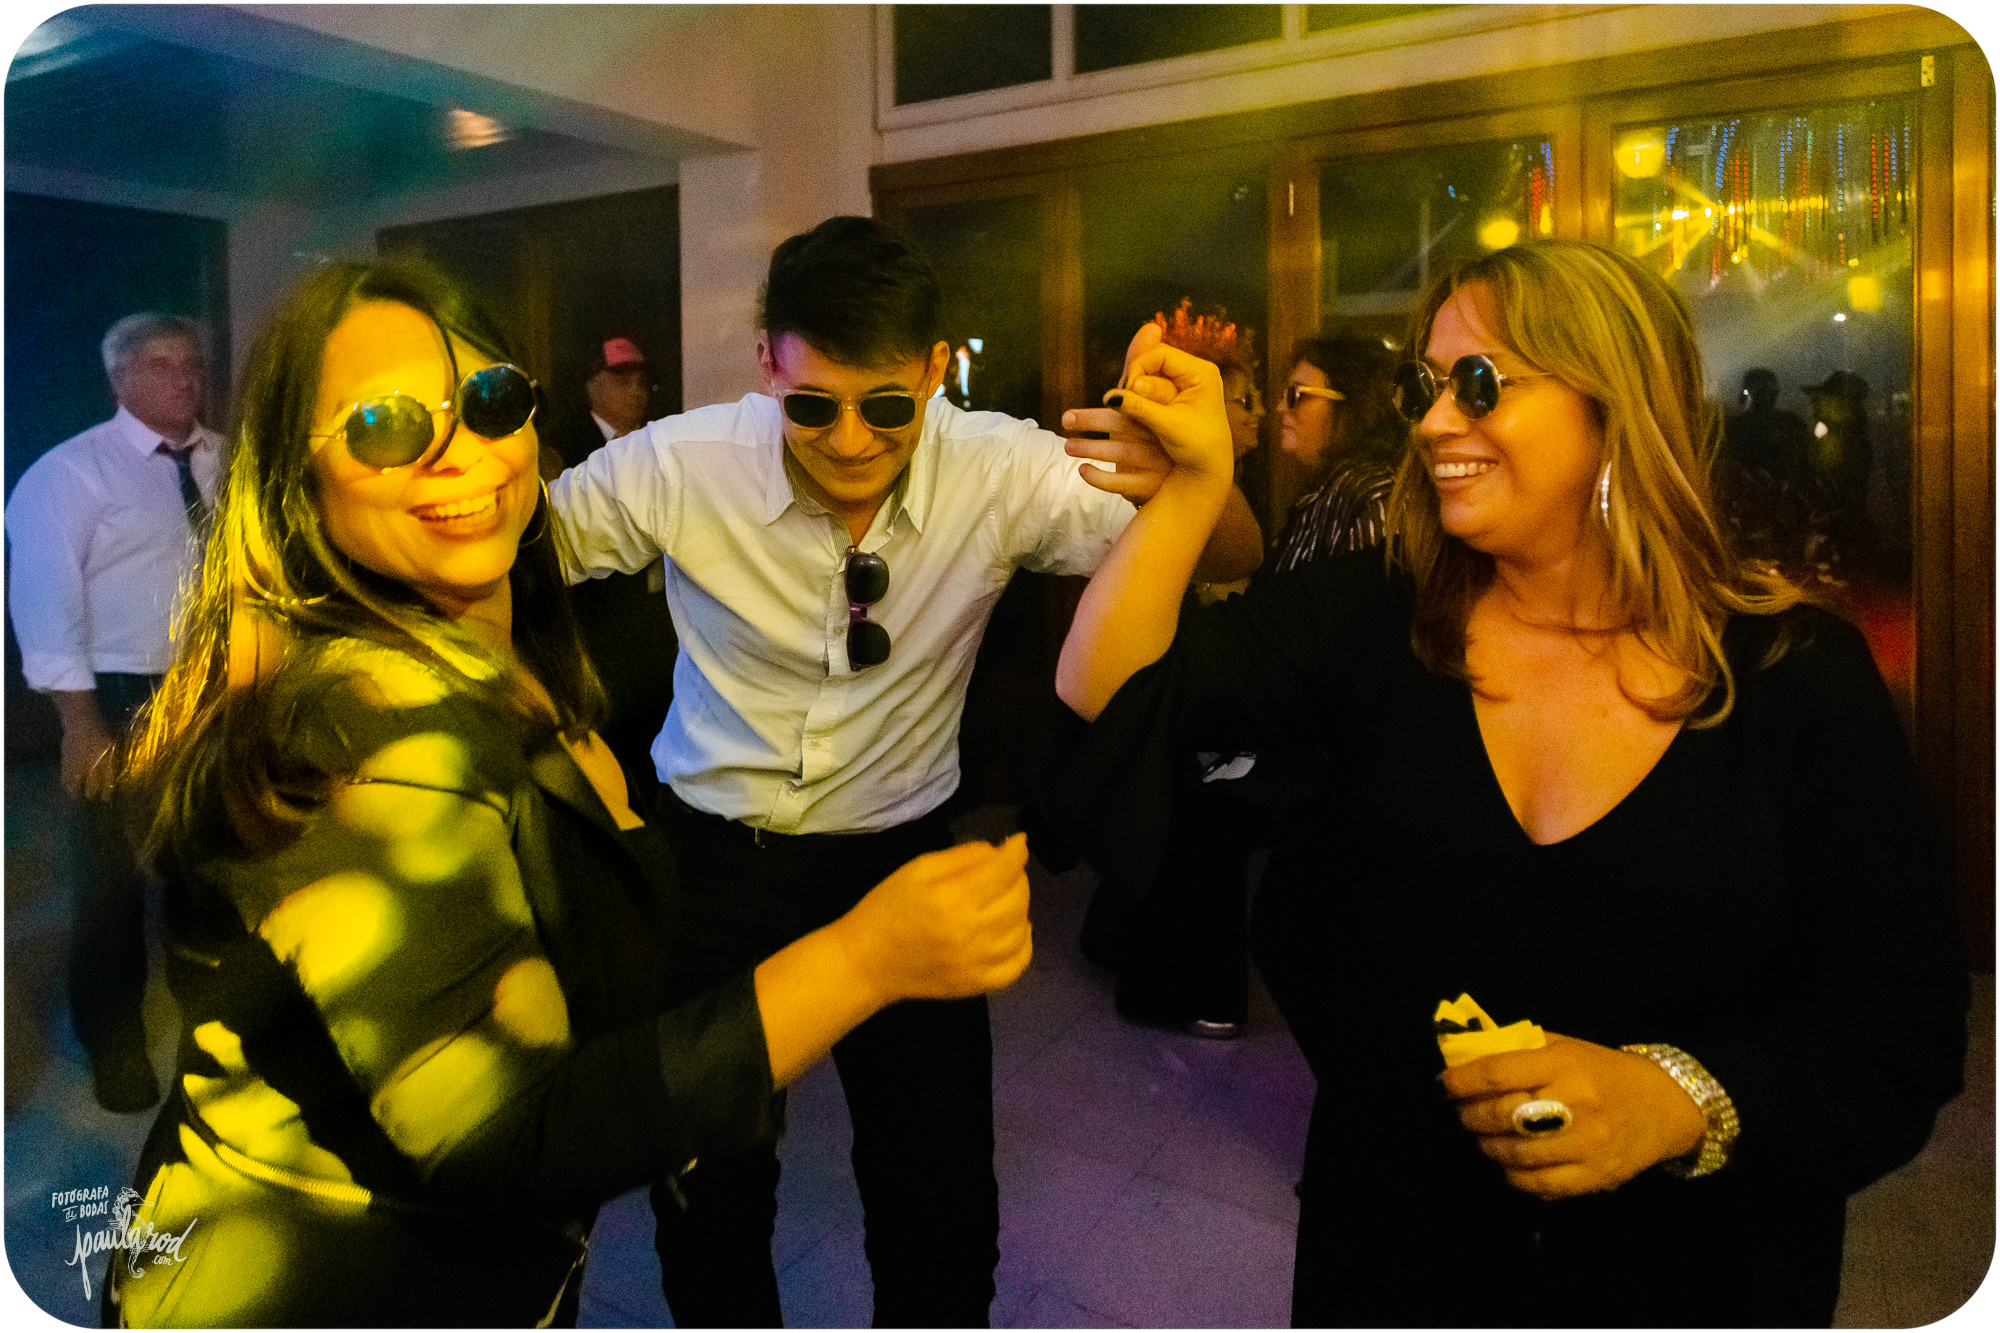 fotografia_documental_para_quinces_en_haedo-2 (8).jpg